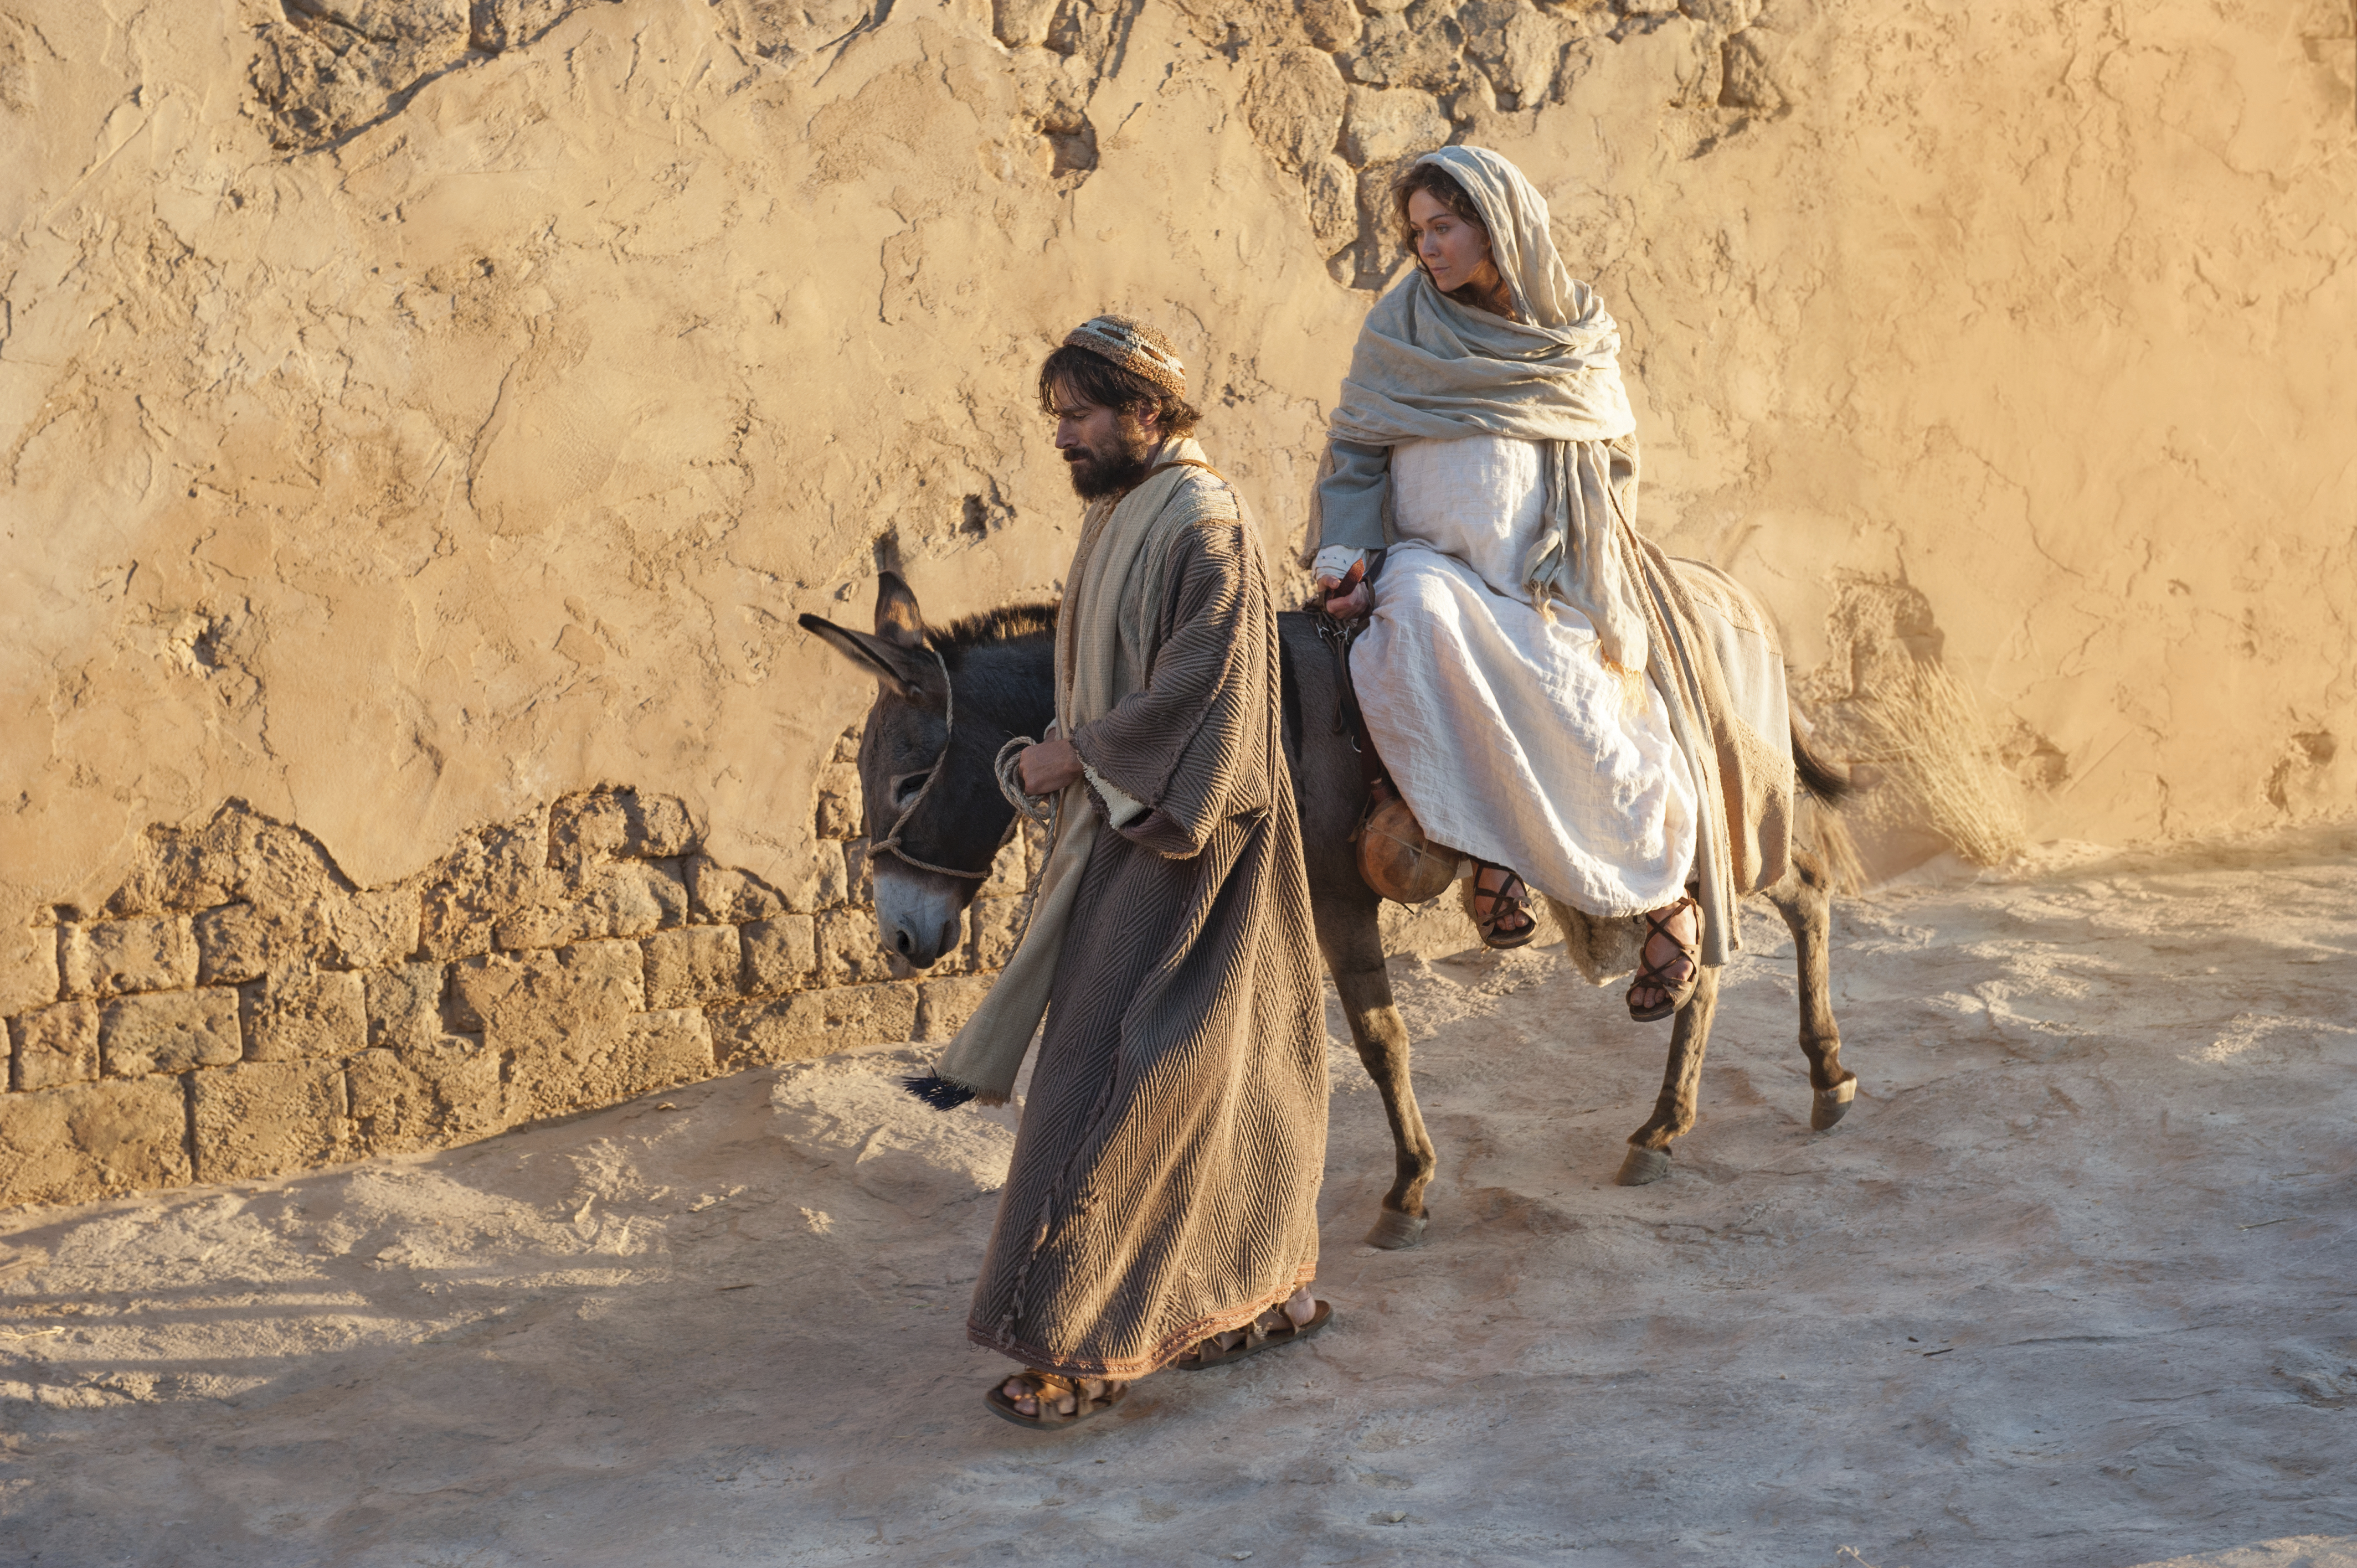 Mary and Joseph ride into Bethlehem at the end of their journey.